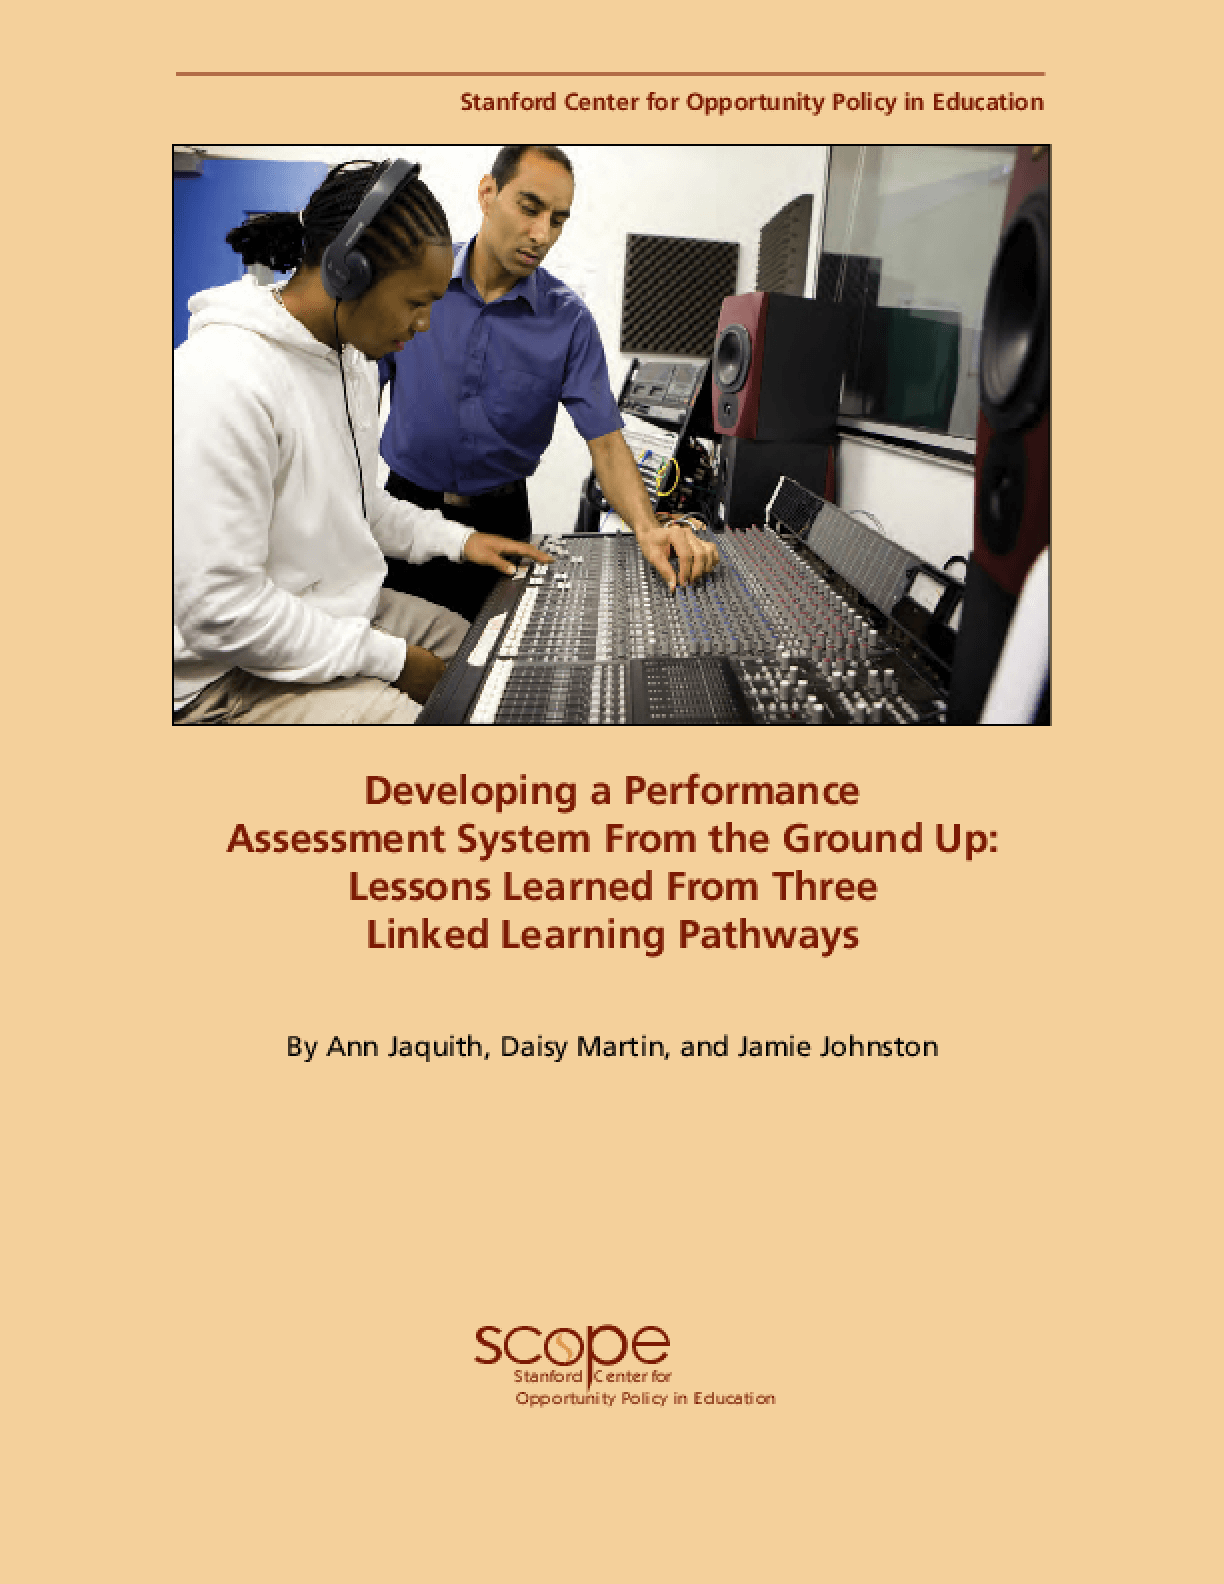 Developing a Performance Assessment System From the Ground Up: Lessons Learned From Three Linked Learning Pathways